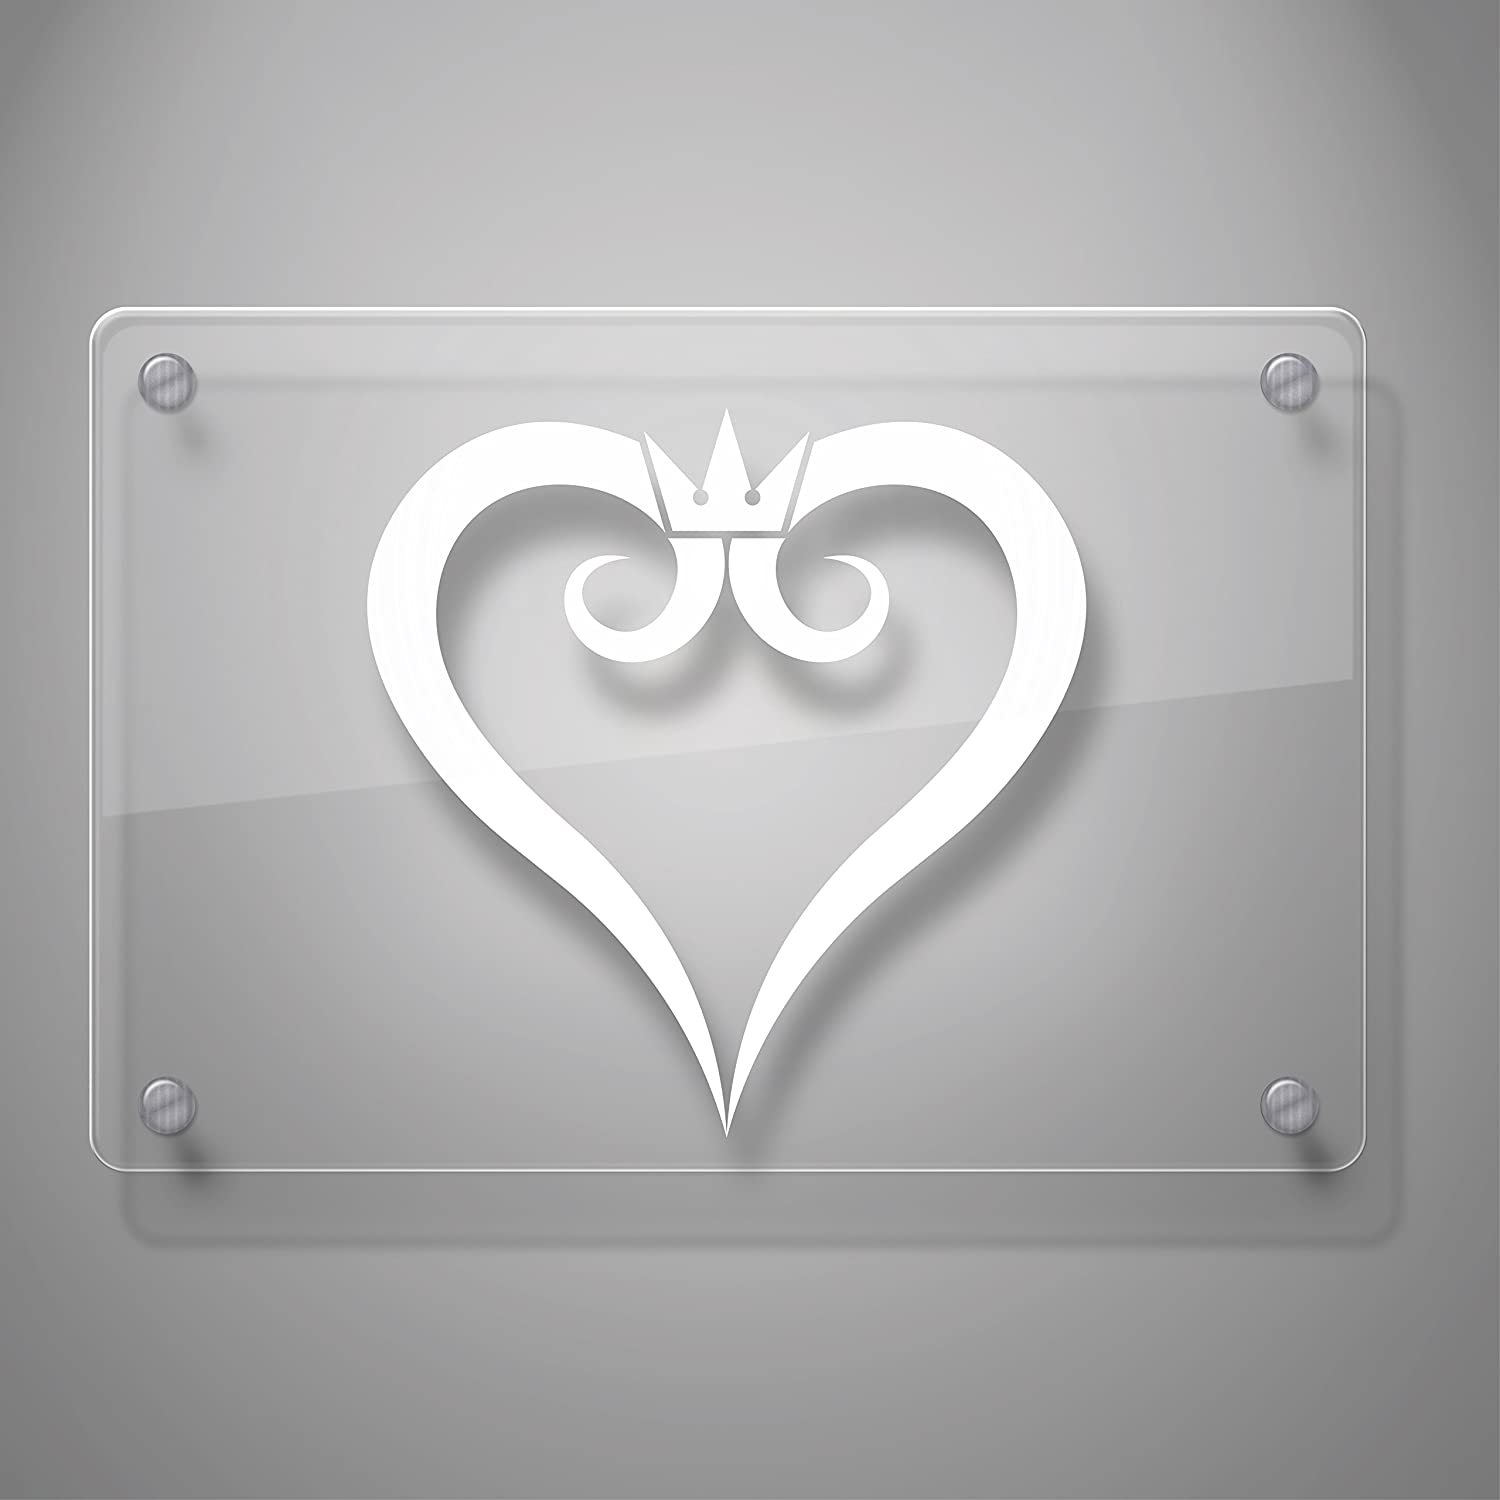 # 491 Laptop and More Kingdom Hearts Inspired Heart Crown Decal Sticker for Car Window # 491 4 x 3.9 Yoonek Graphics Laptop and More 4 x 3.9, White